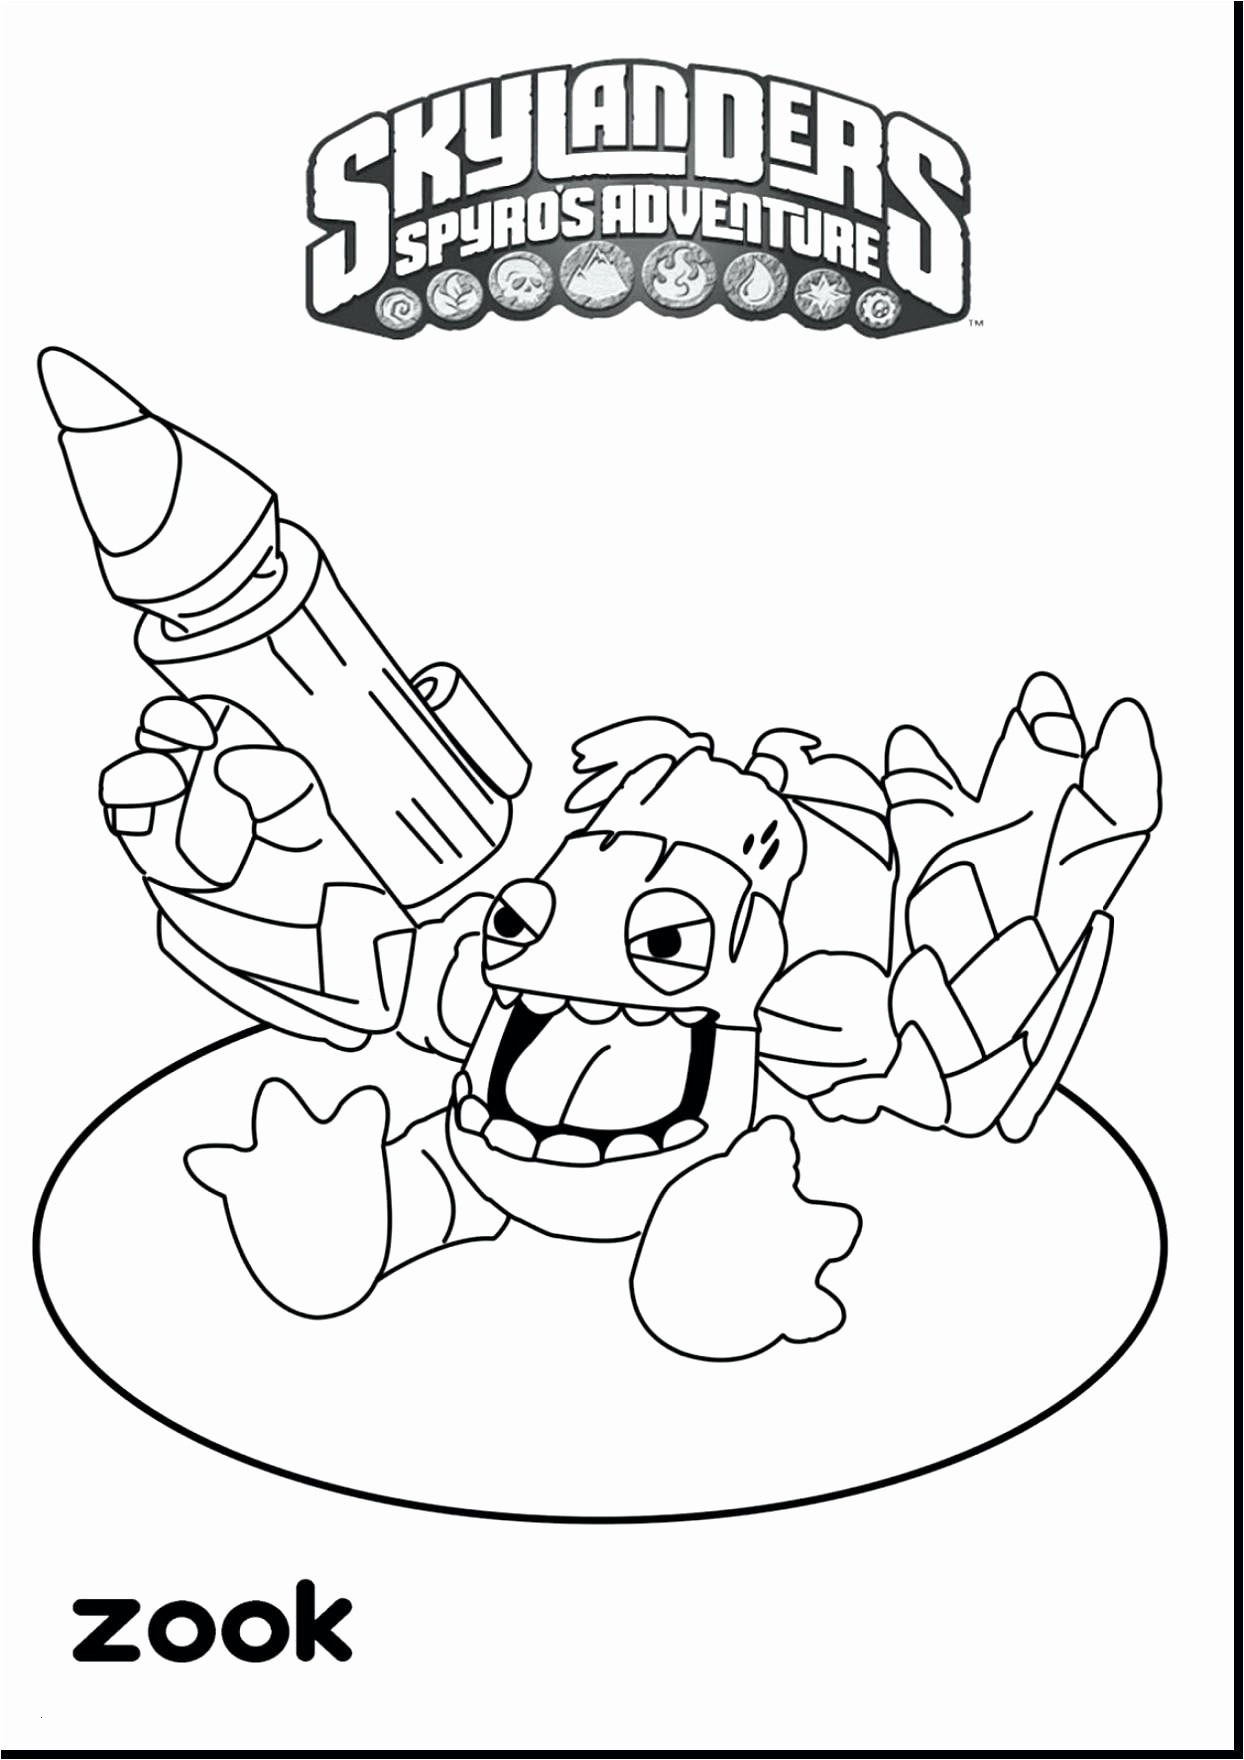 Kachina Coloring Pages  Printable 3r - Save it to your computer